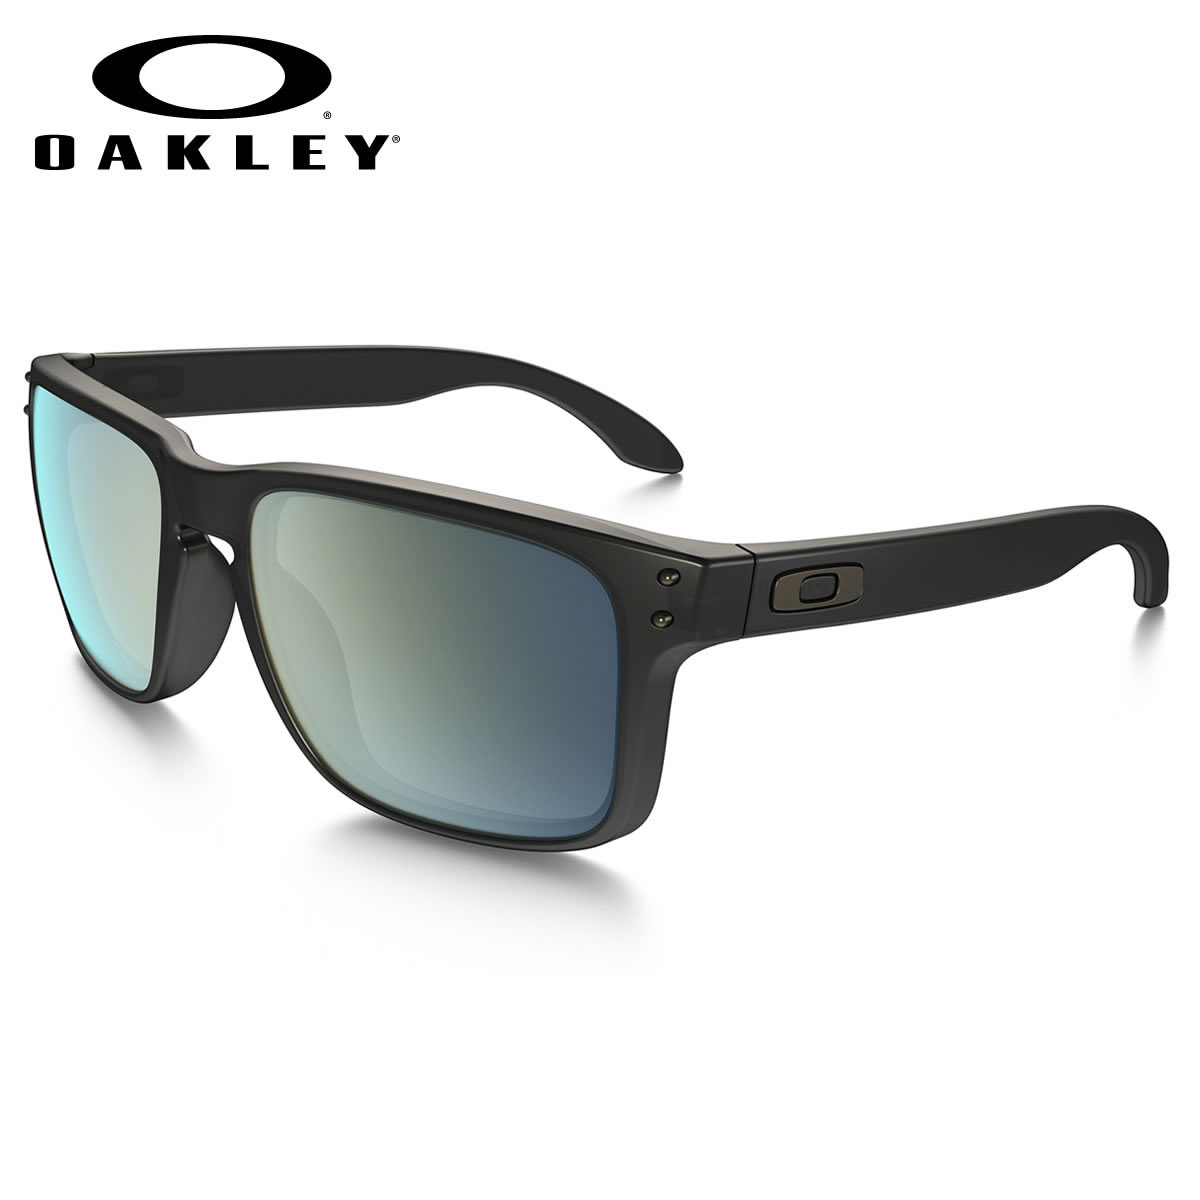 2ddc6bb380 (Oakley) sunglasses OO9244-07 HOLBROOK ASIA FIT Matte Black Ink Emerald  Iridium Holbrook Asian fit sport Oakley OAKLEY men s women s